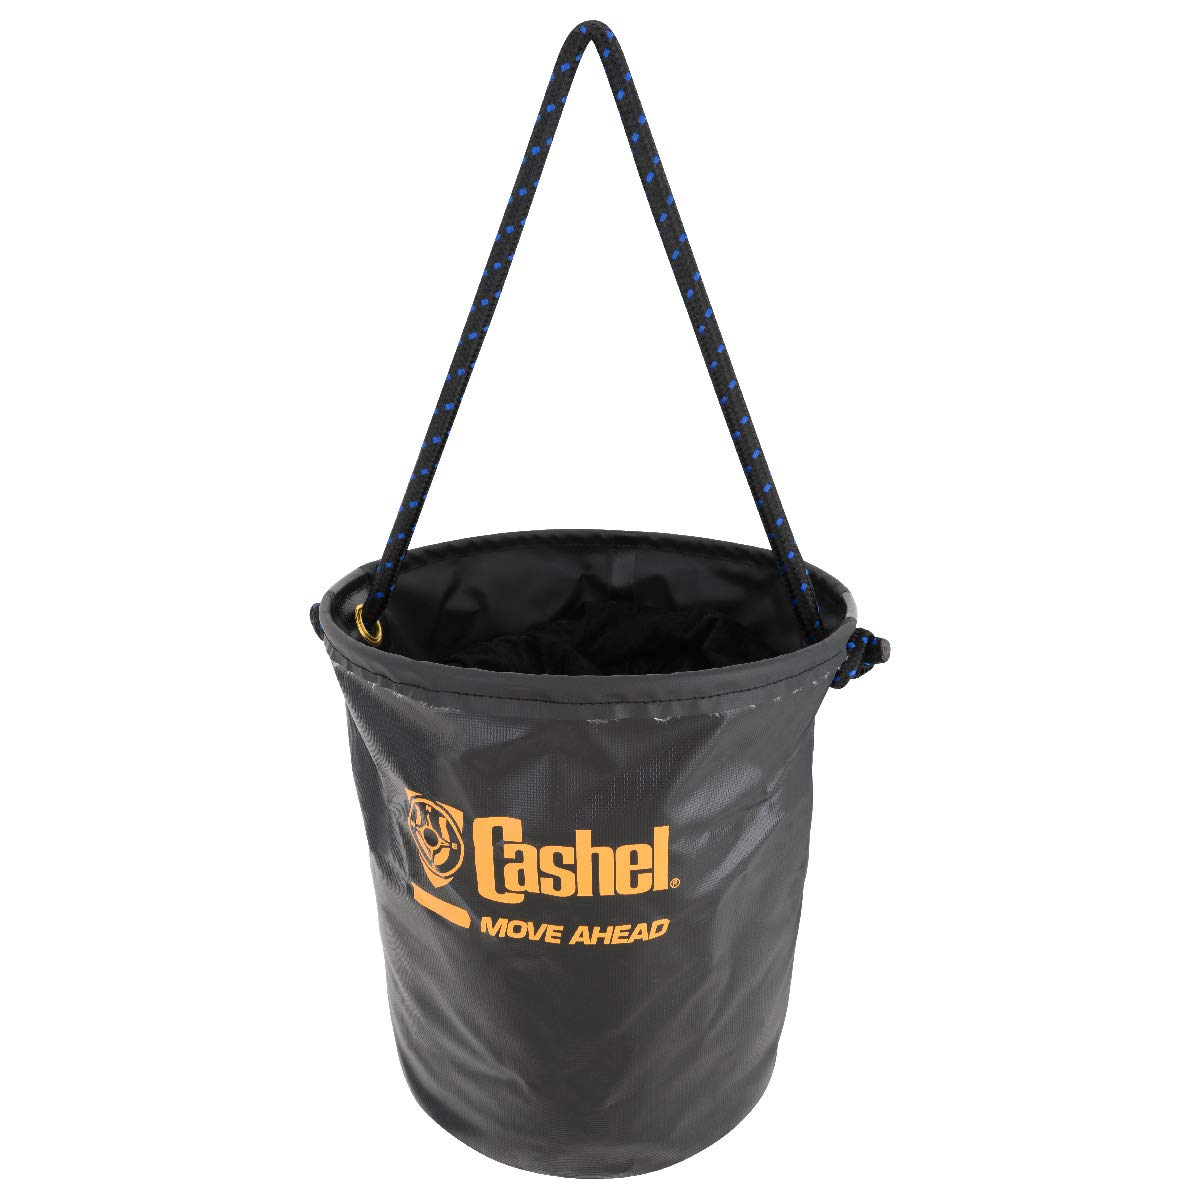 Cashel Collapsible Water Pail, Large by Cashel